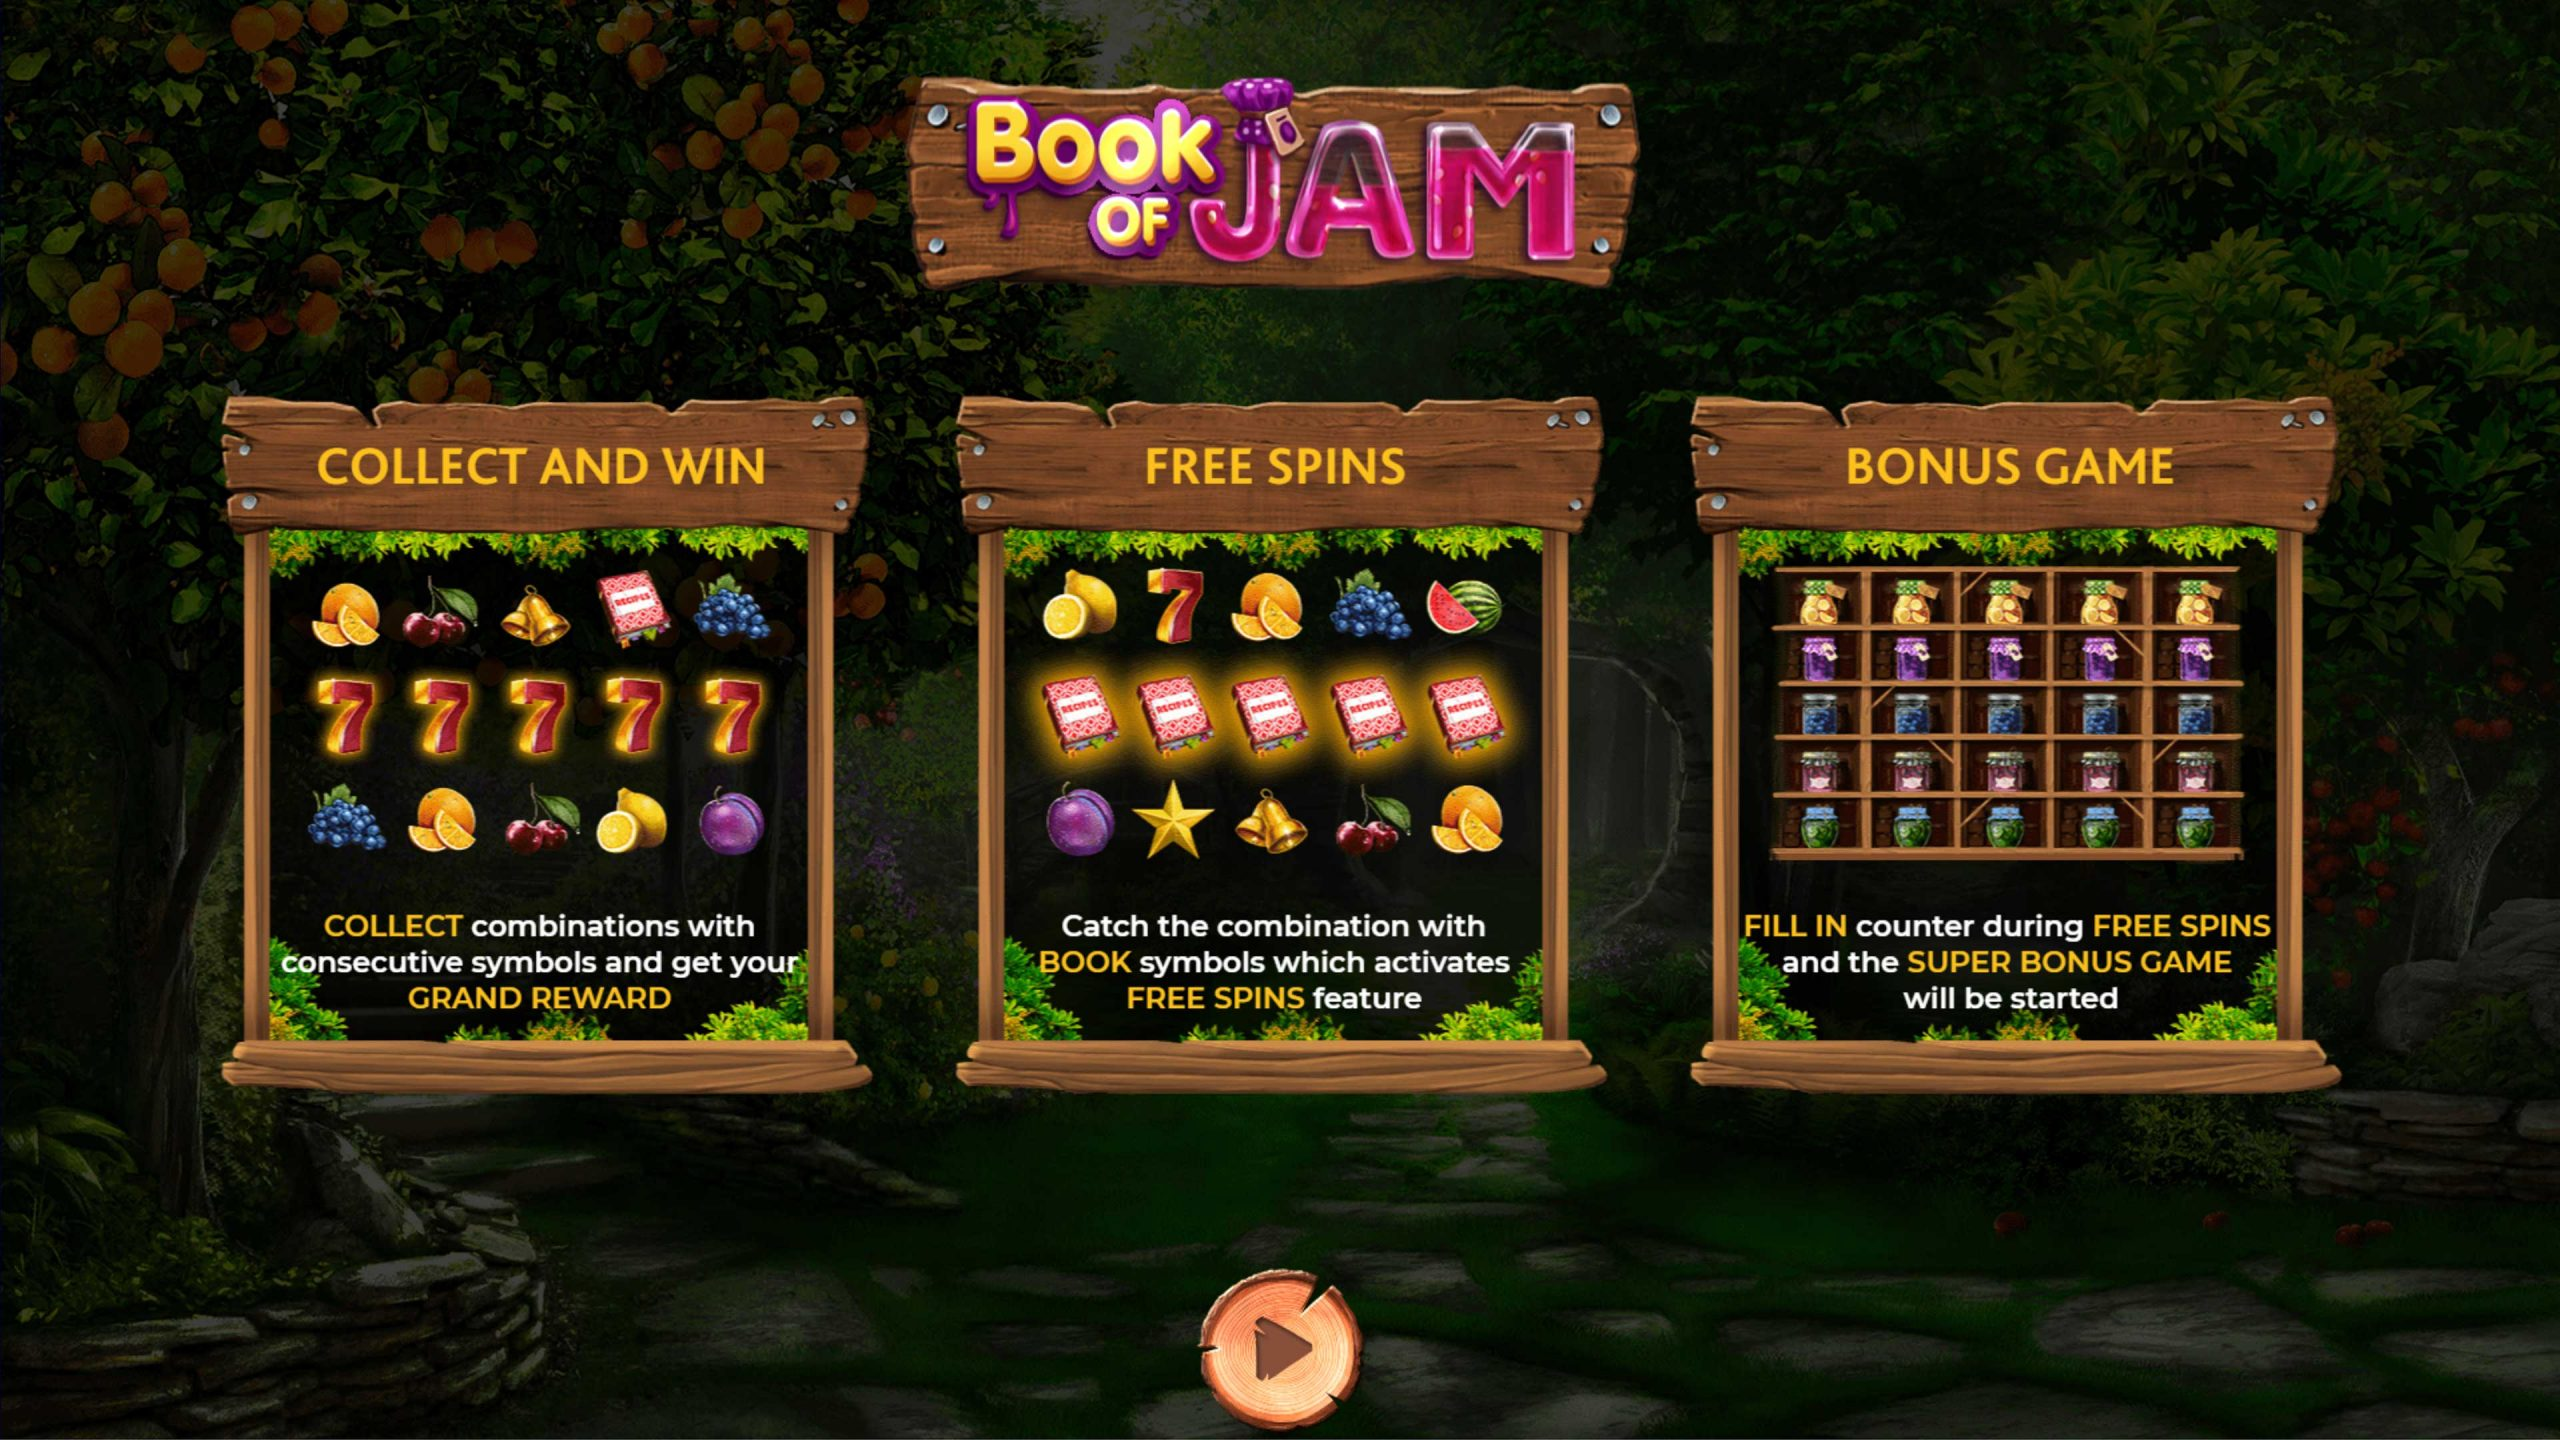 Book of Jam by ⚡⚡⚡ThunderSpin: Brief Rules